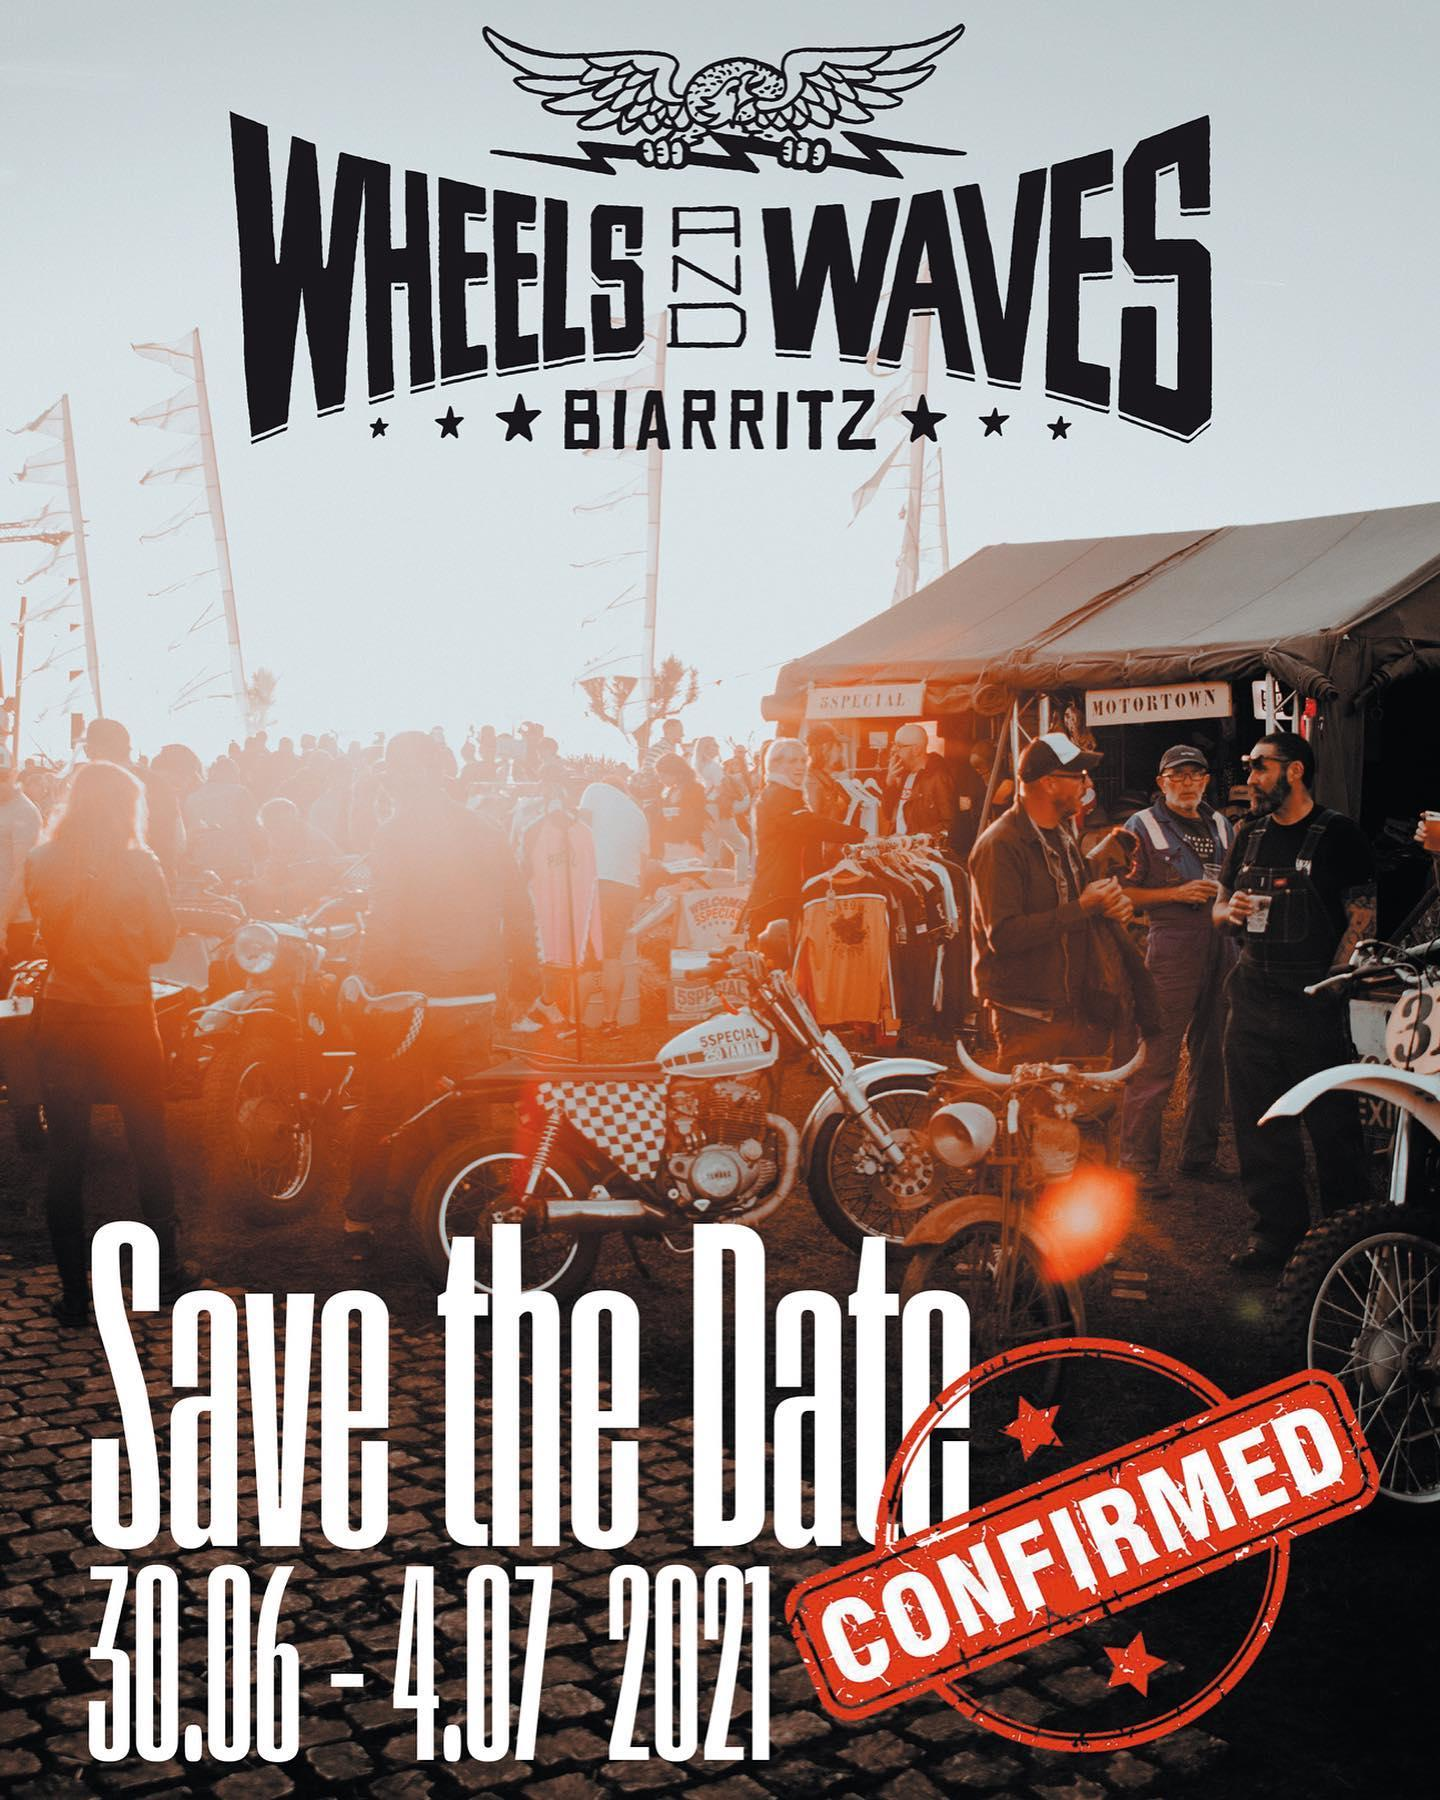 Wheels waves c est confirme